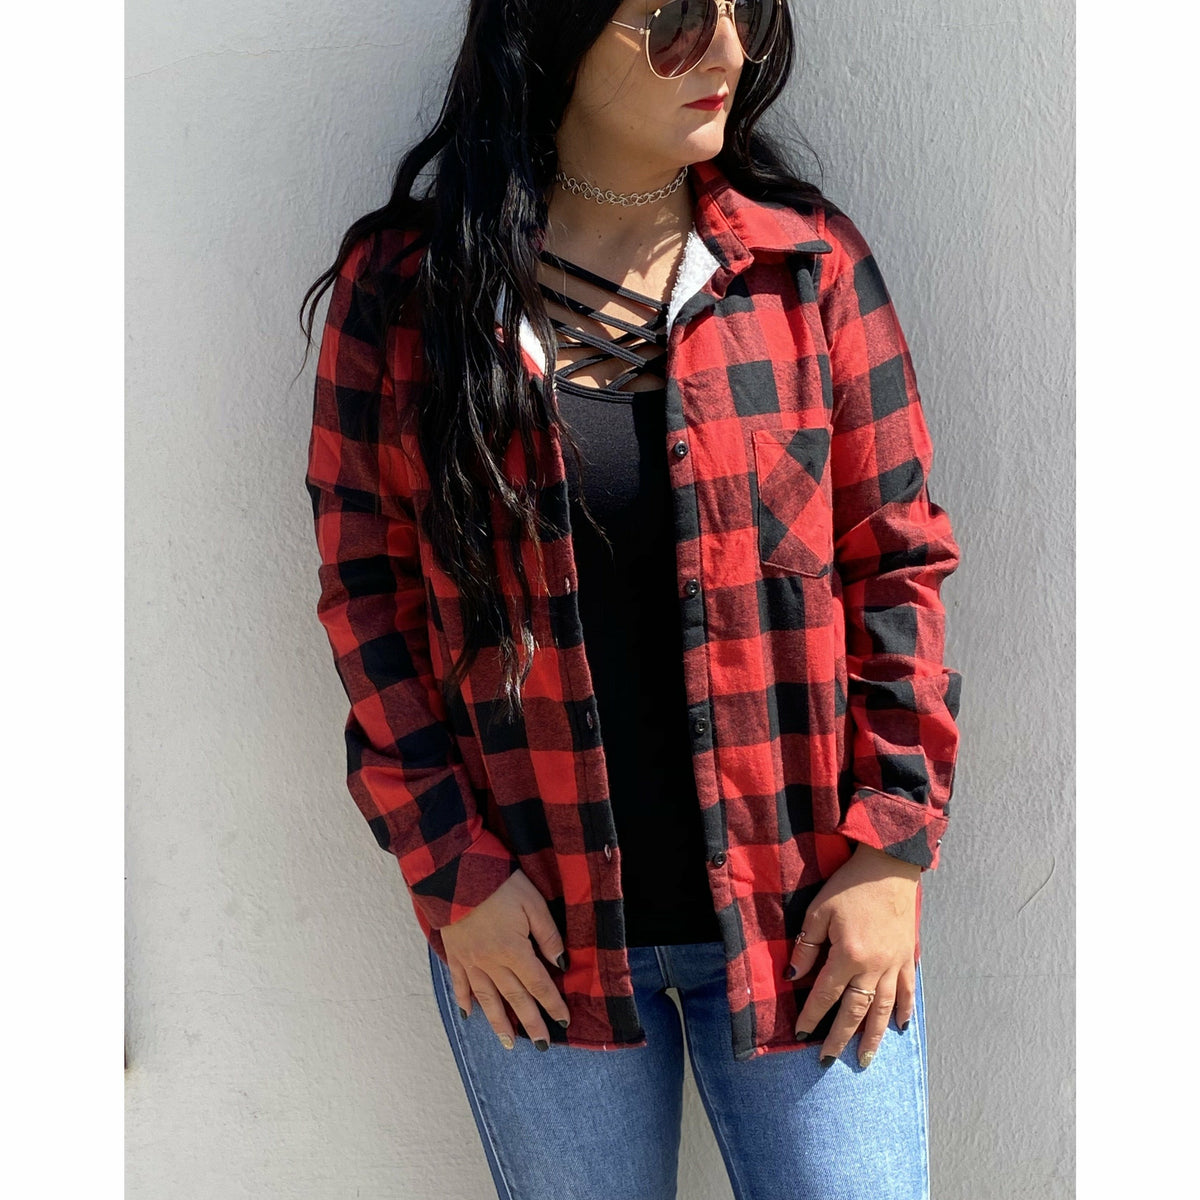 Red/Black Buffalo Plaid lined Flannel (regular & Plus)